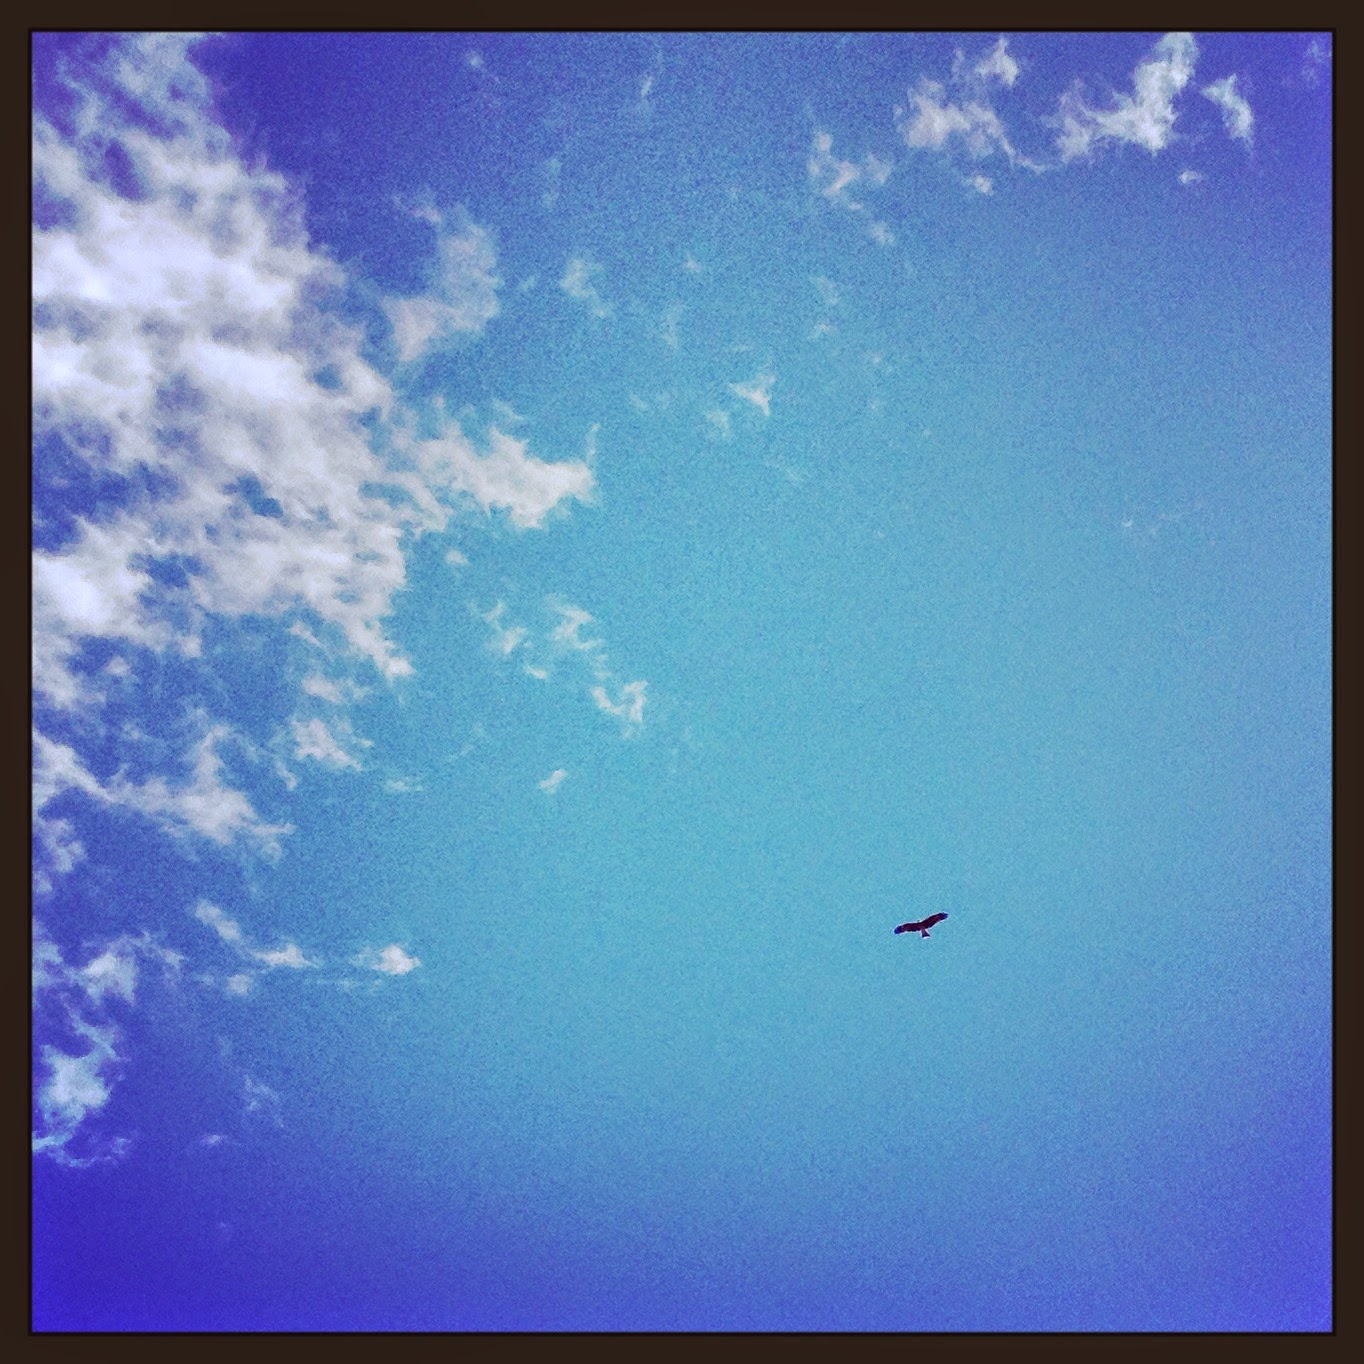 Bright the hawk's flight on the empty sky